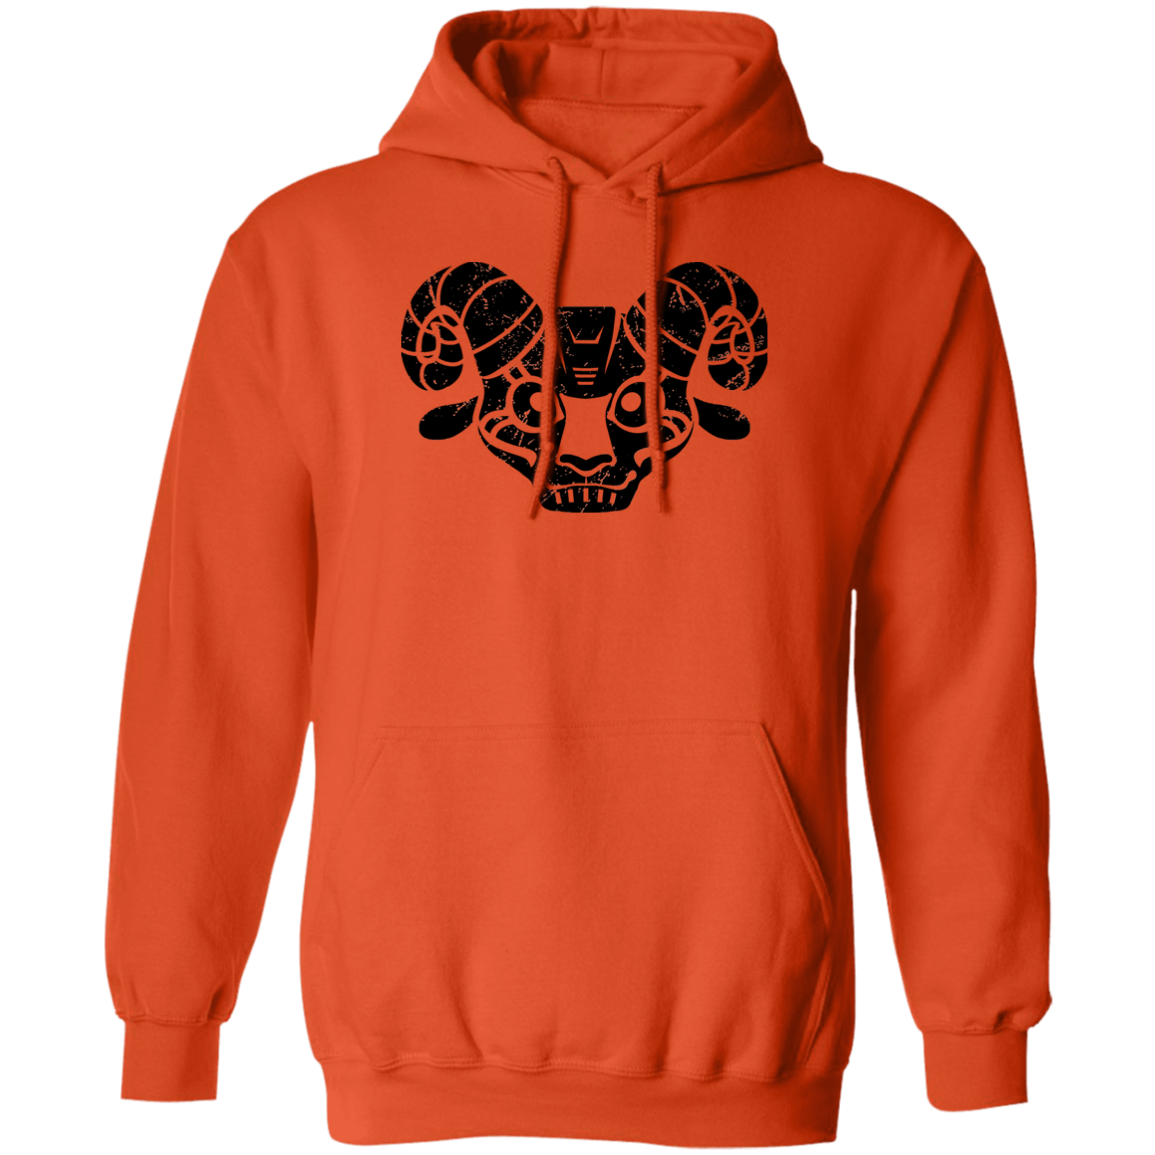 Black Distressed Emblem Hoodies for Adults (Goat/BILLE)